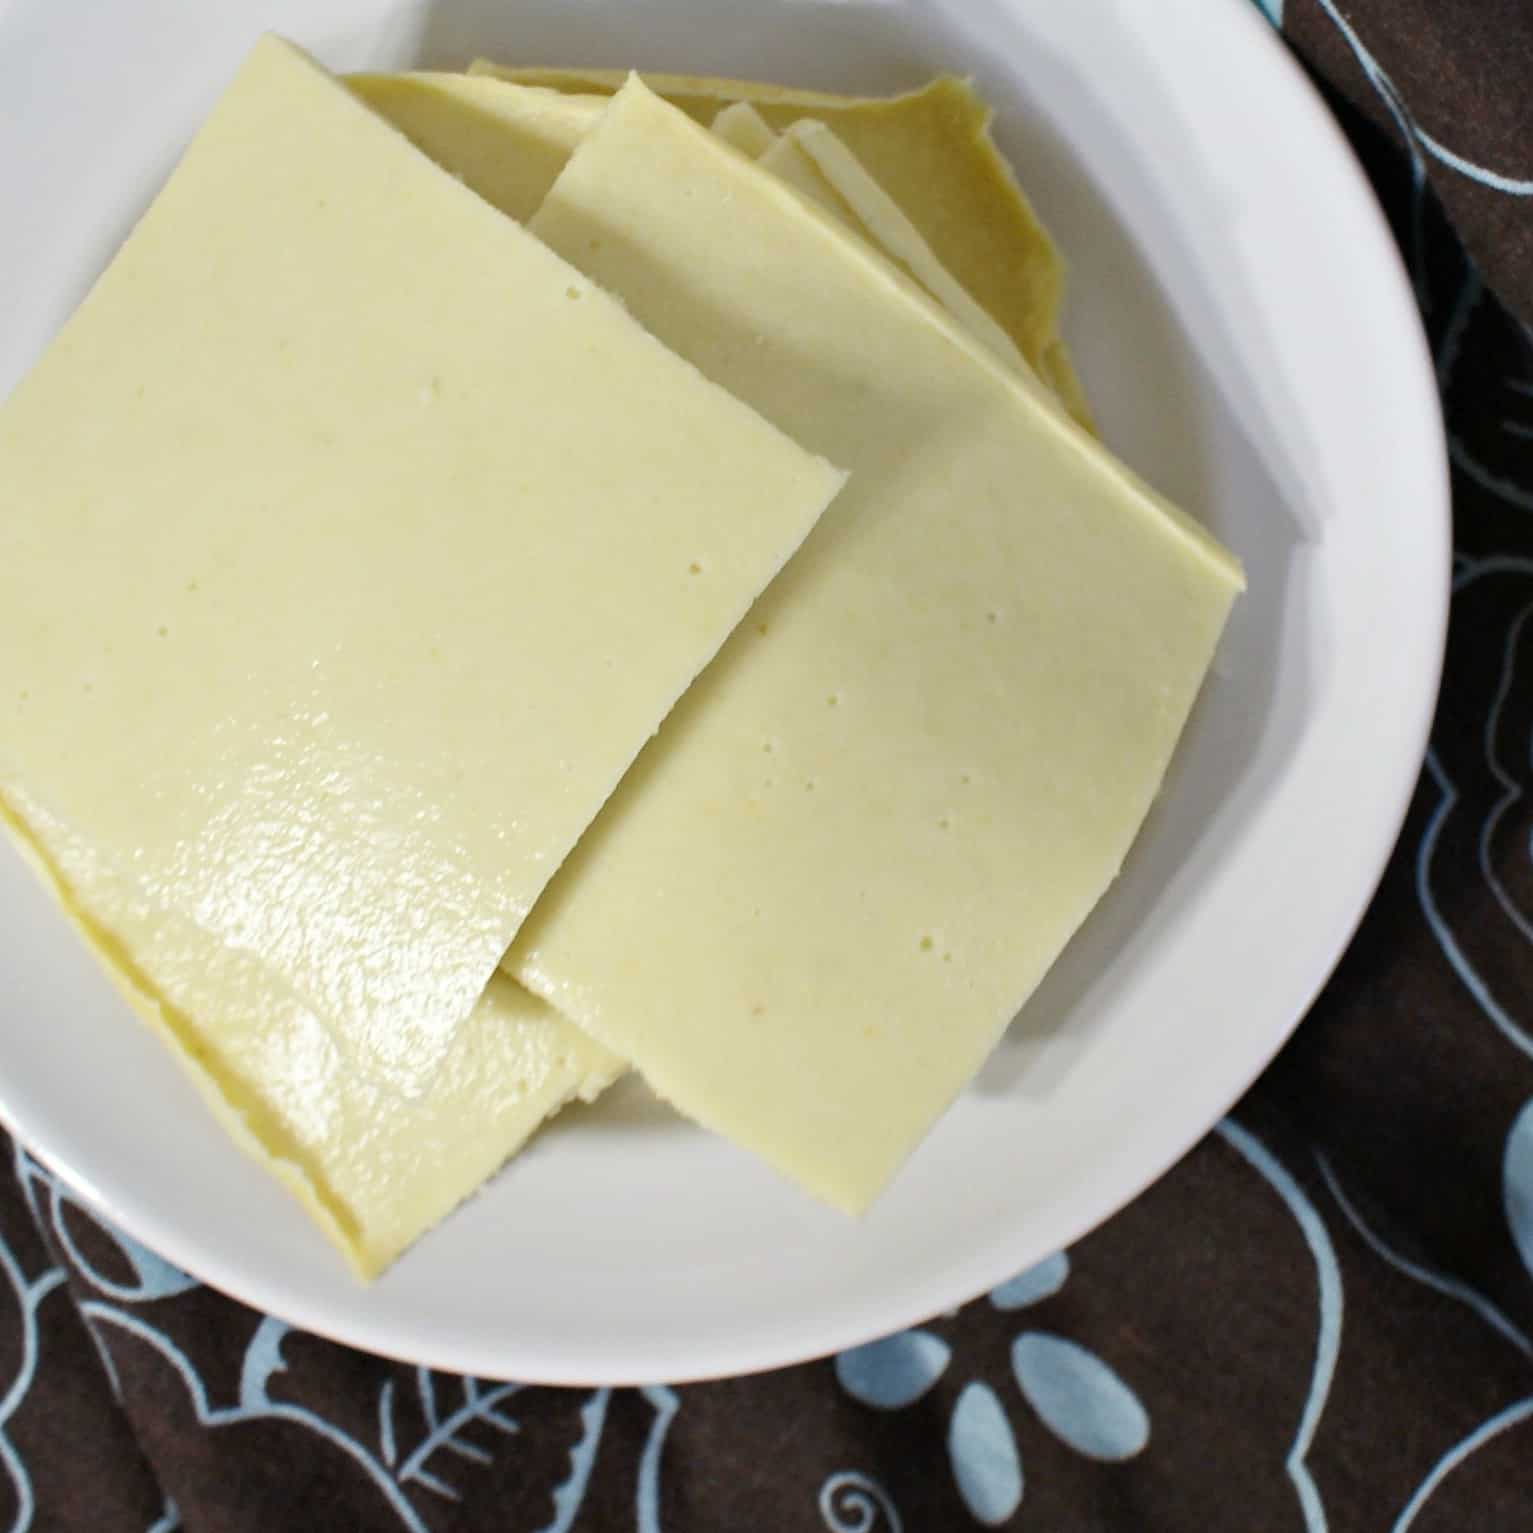 Nut-free cheese